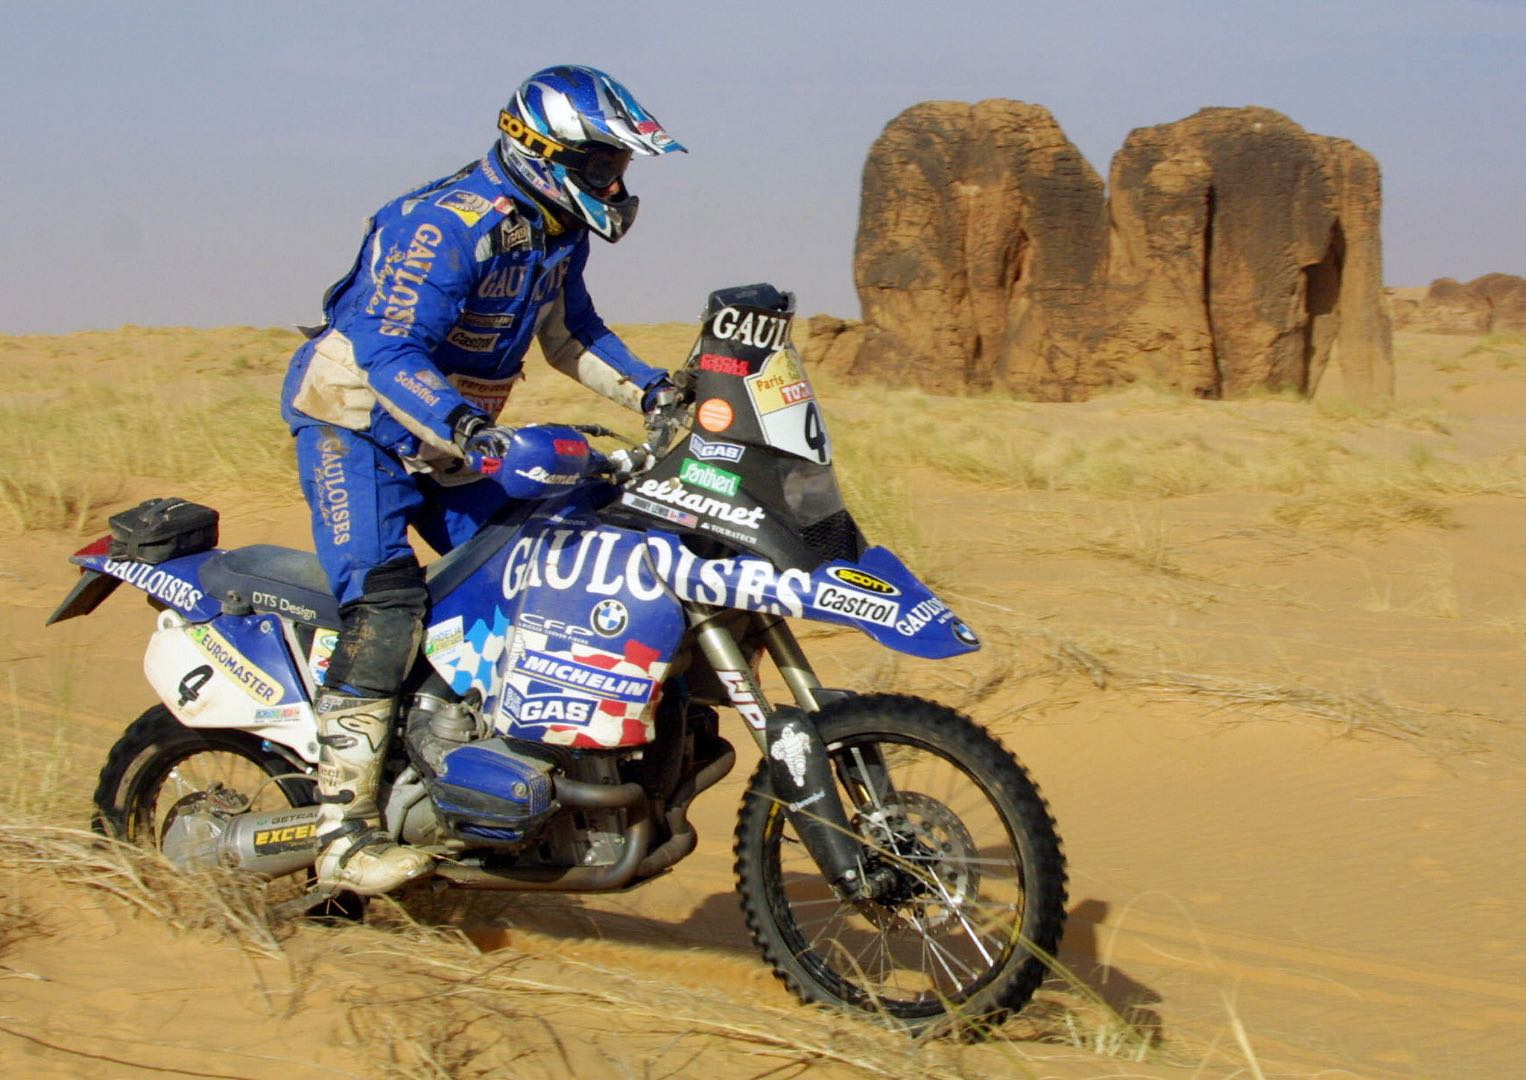 Pahrump to Dakar Rally Experience Set for April 7-9: Registration Open